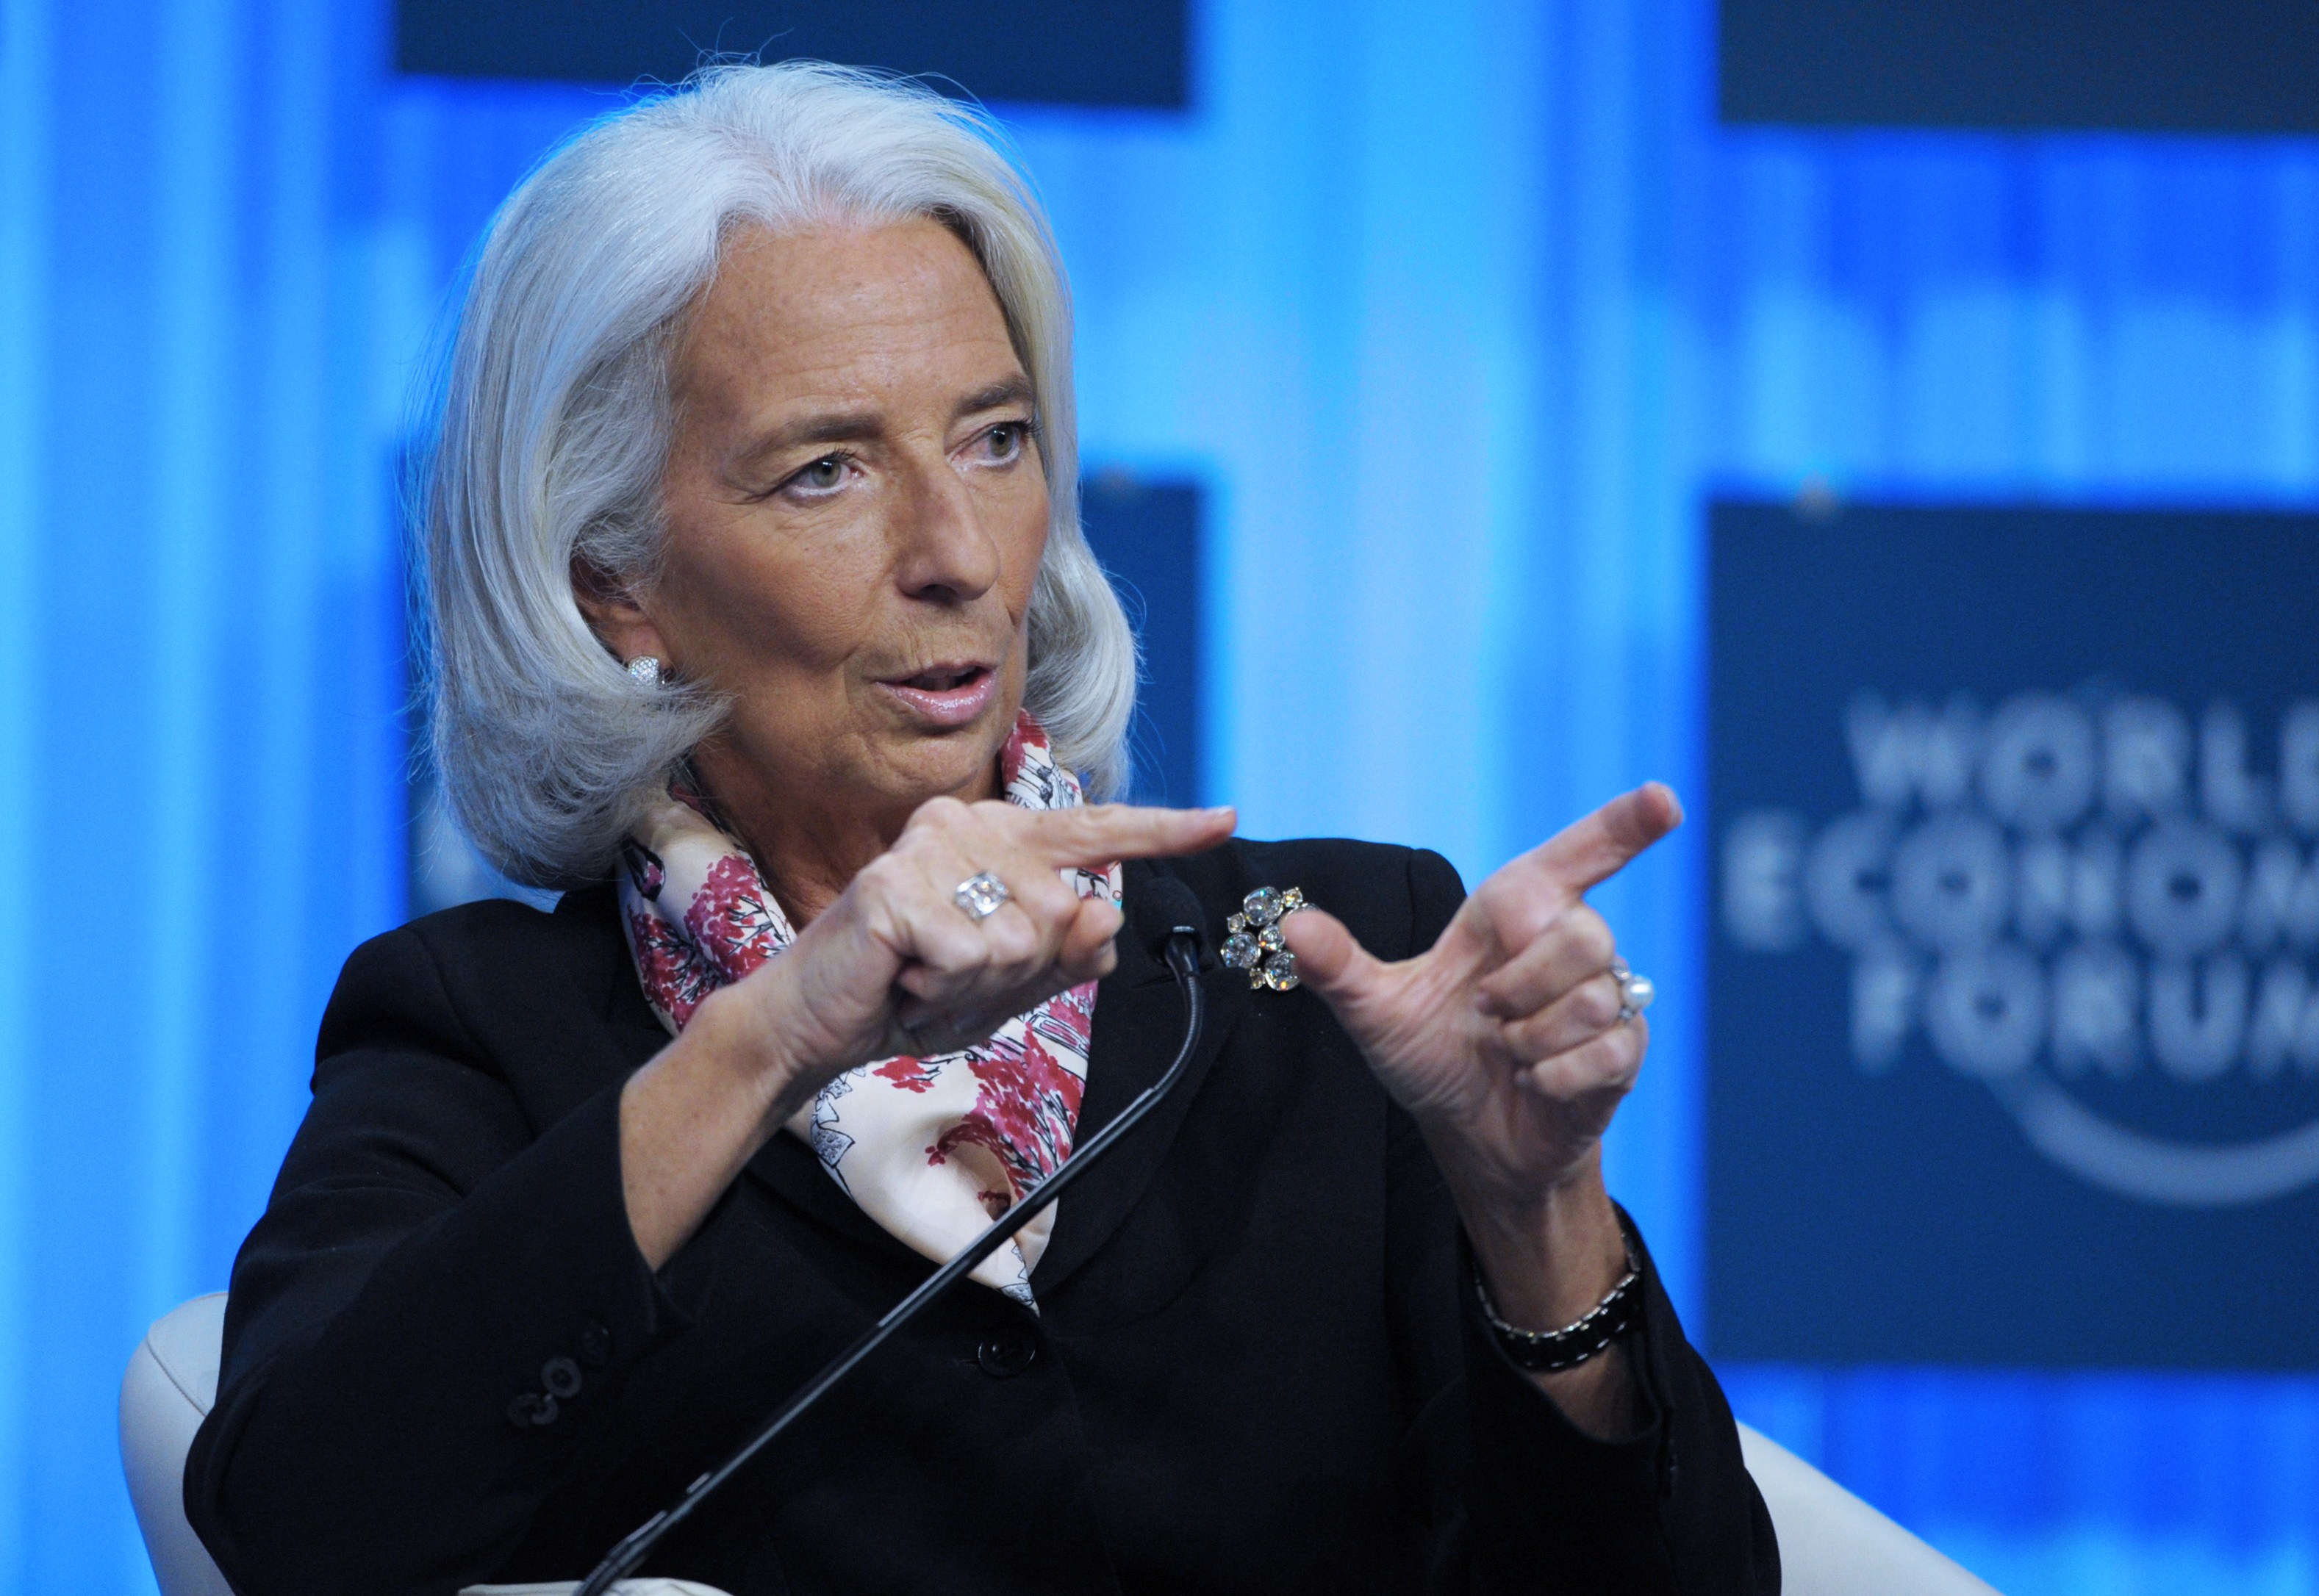 Lagarde said that the steps taken by the government toward economic reform form a good start for restoring public finances. (AFP PHOTO / ERIC PIERMONT)